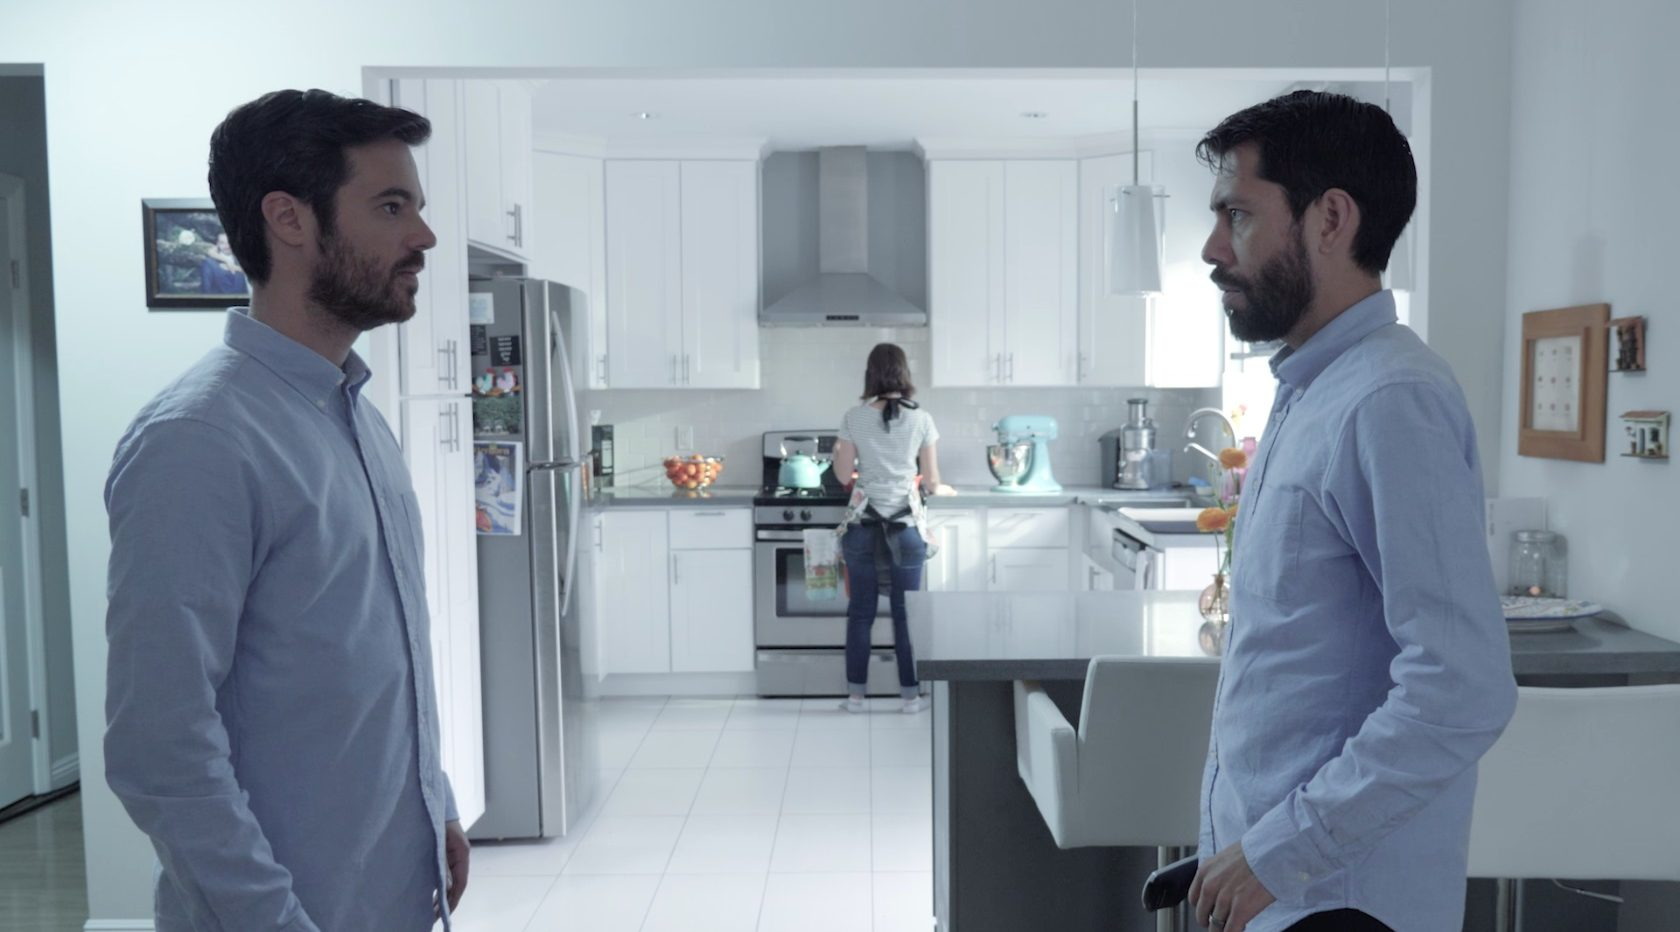 You Should Stream: This Hilarious Sci-Fi Short Is Like a Latino 'Black Mirror'